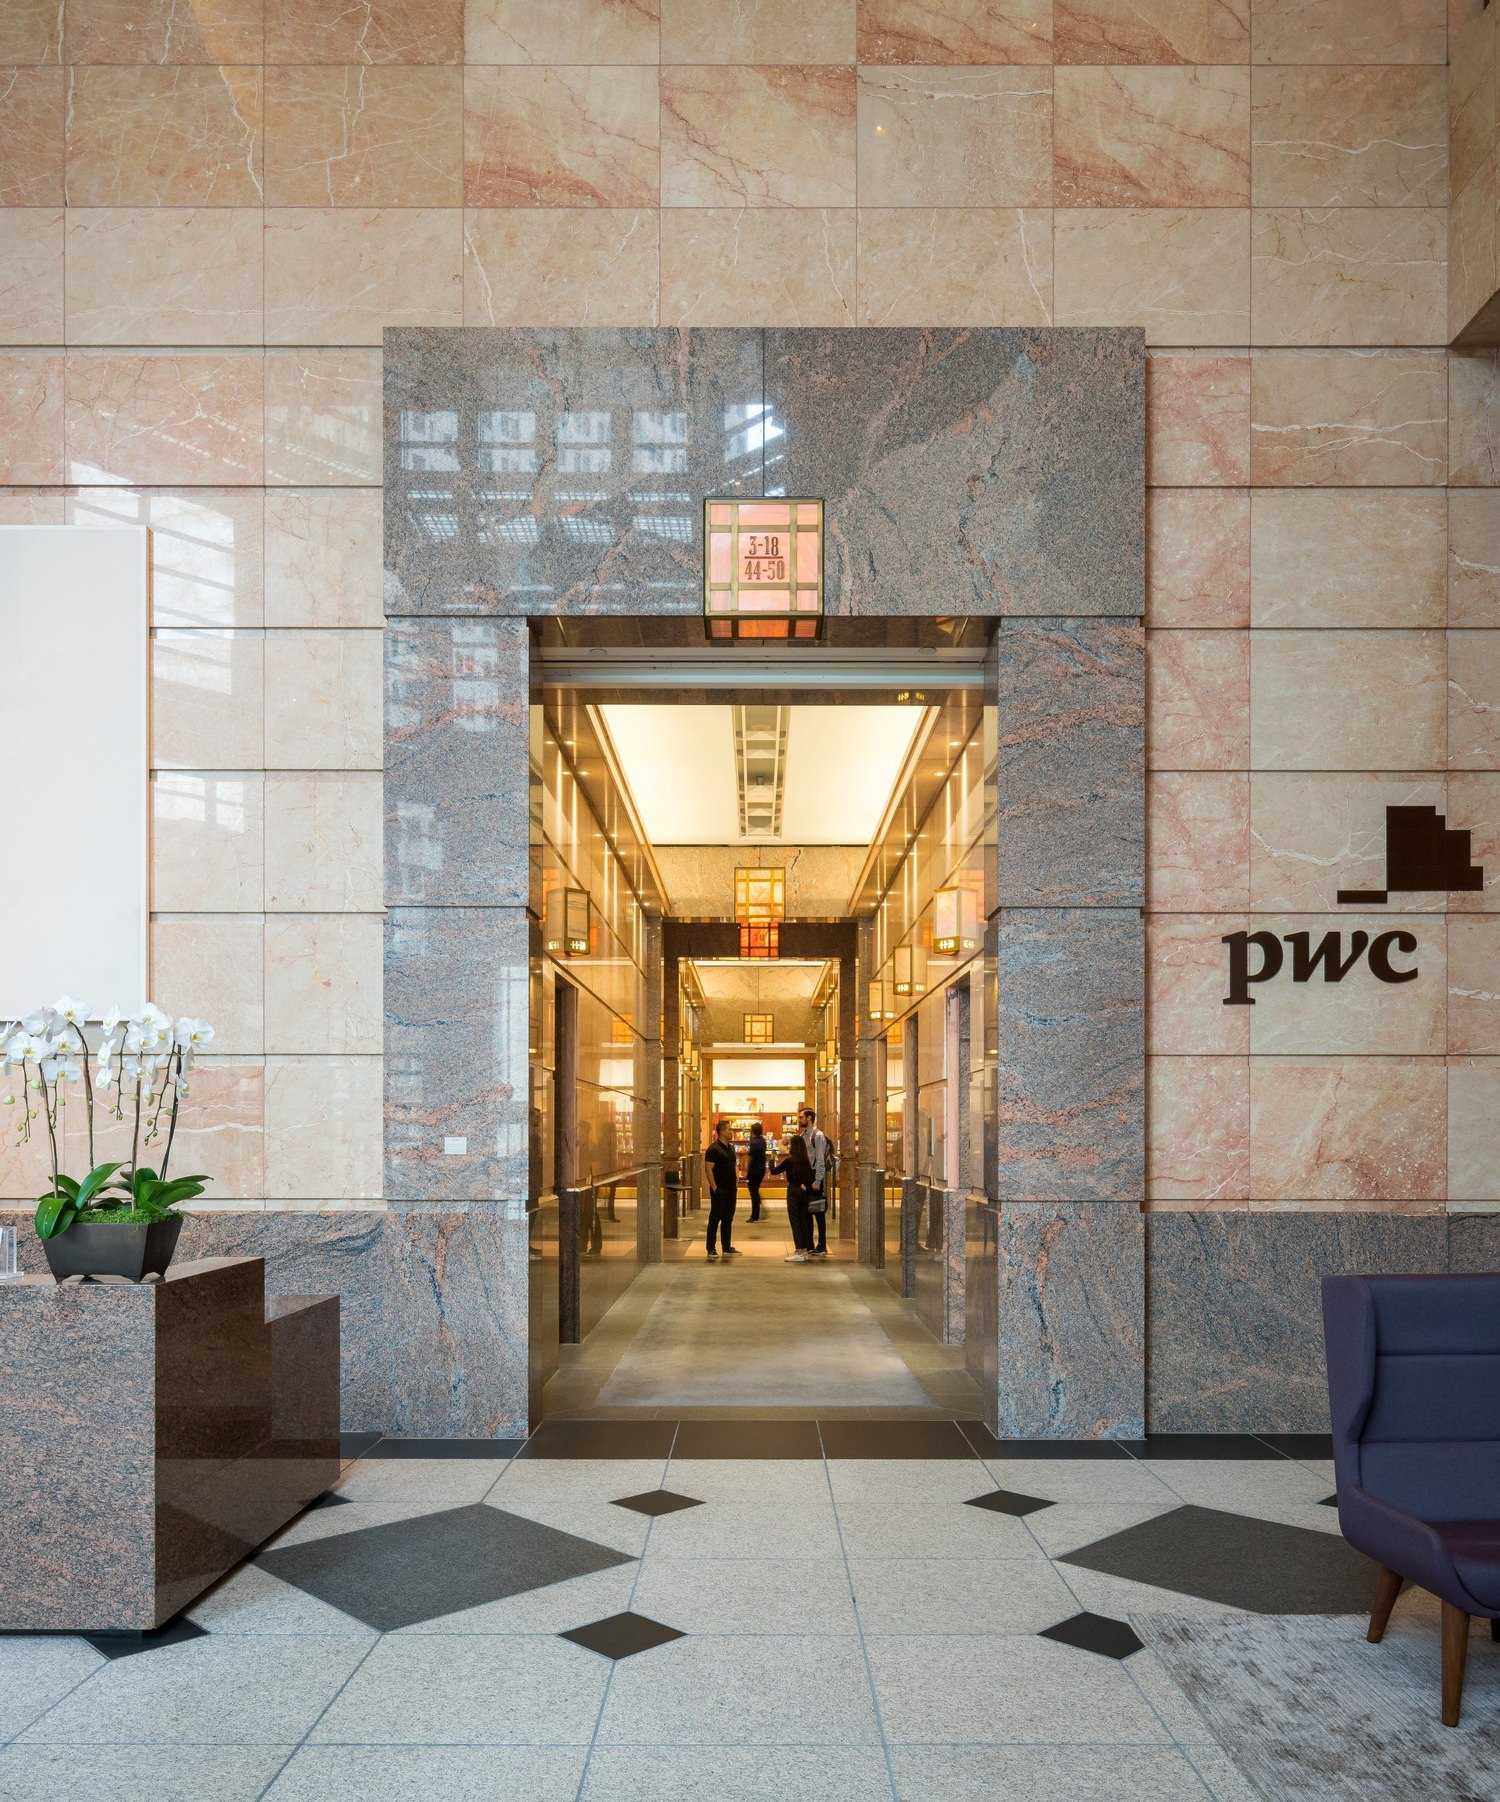 Lobby of the PWC building that has people walking along the long corridor by the elevators.